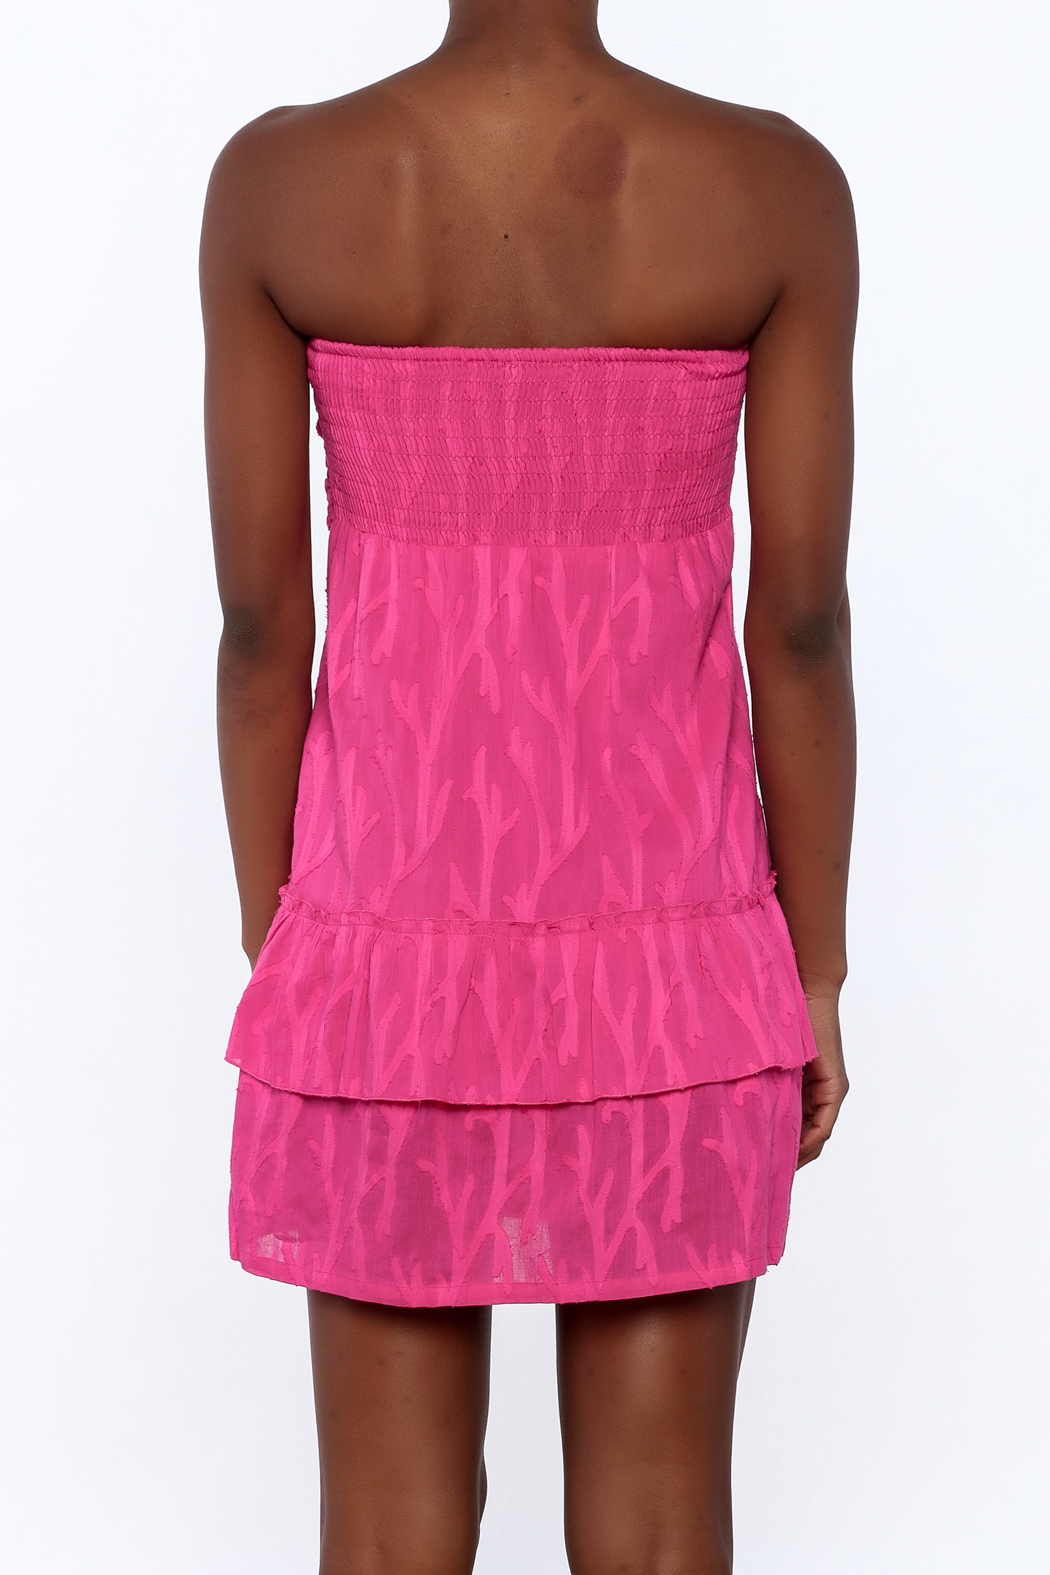 Southern Frock Pink Positano Dress - Back Cropped Image